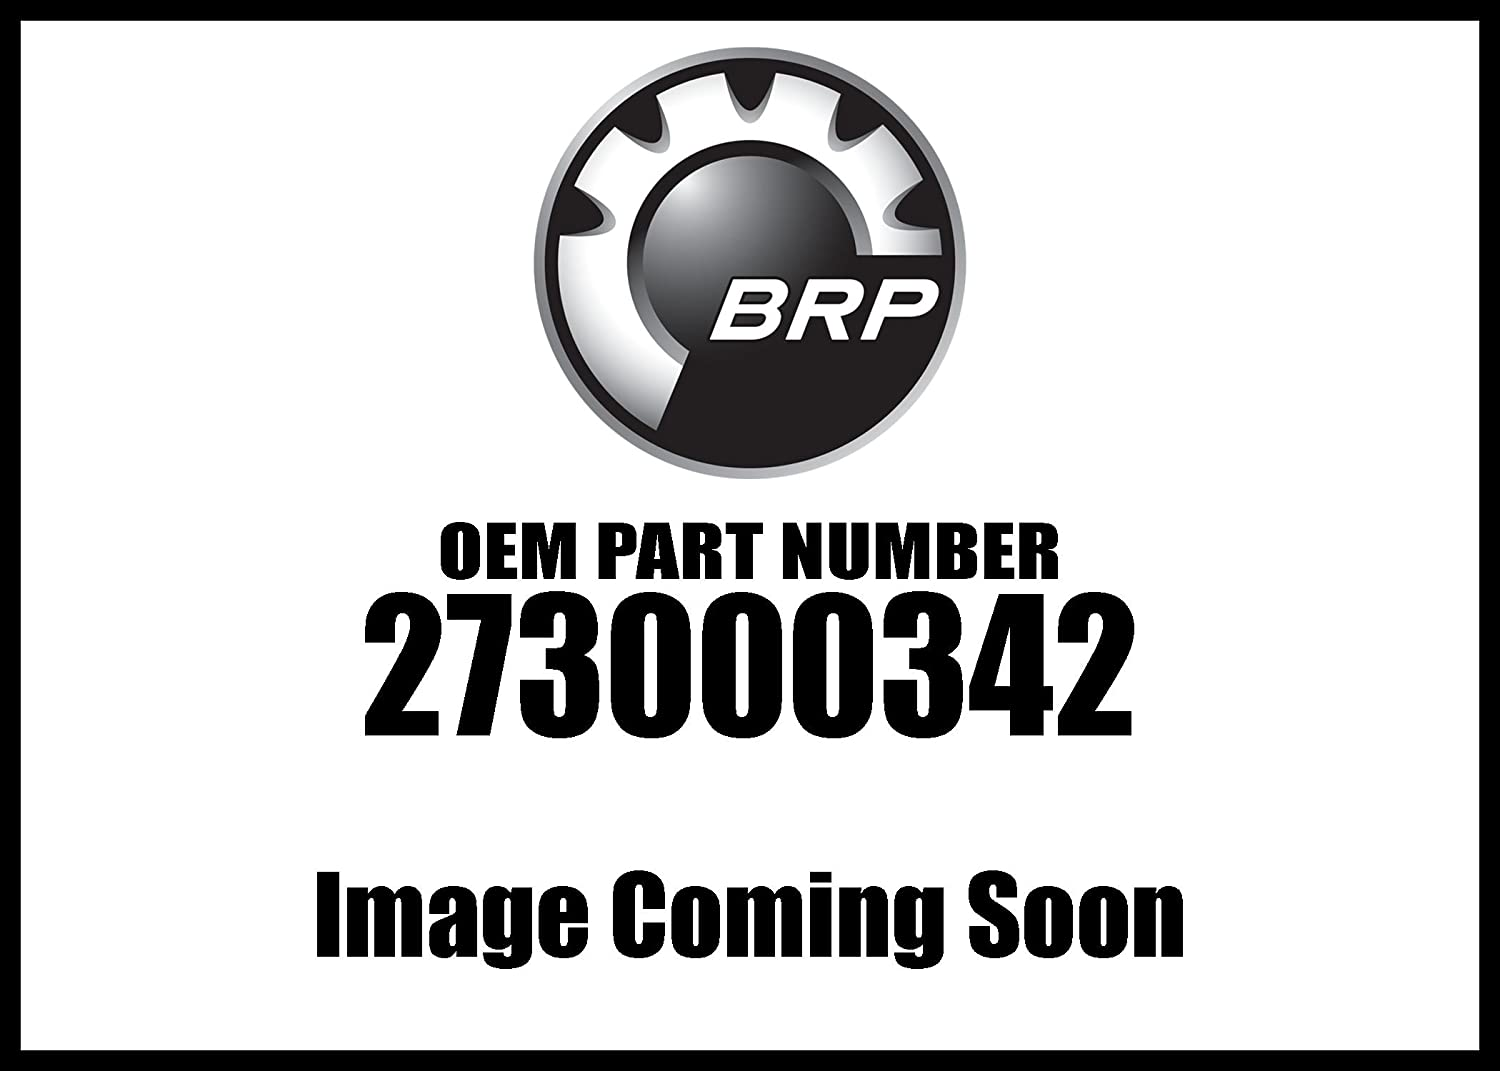 Sea-Doo 2016-2018 Rxp Rxt Silencieux Super Safety and trust popular specialty store Adm Airbox Base N 273000342